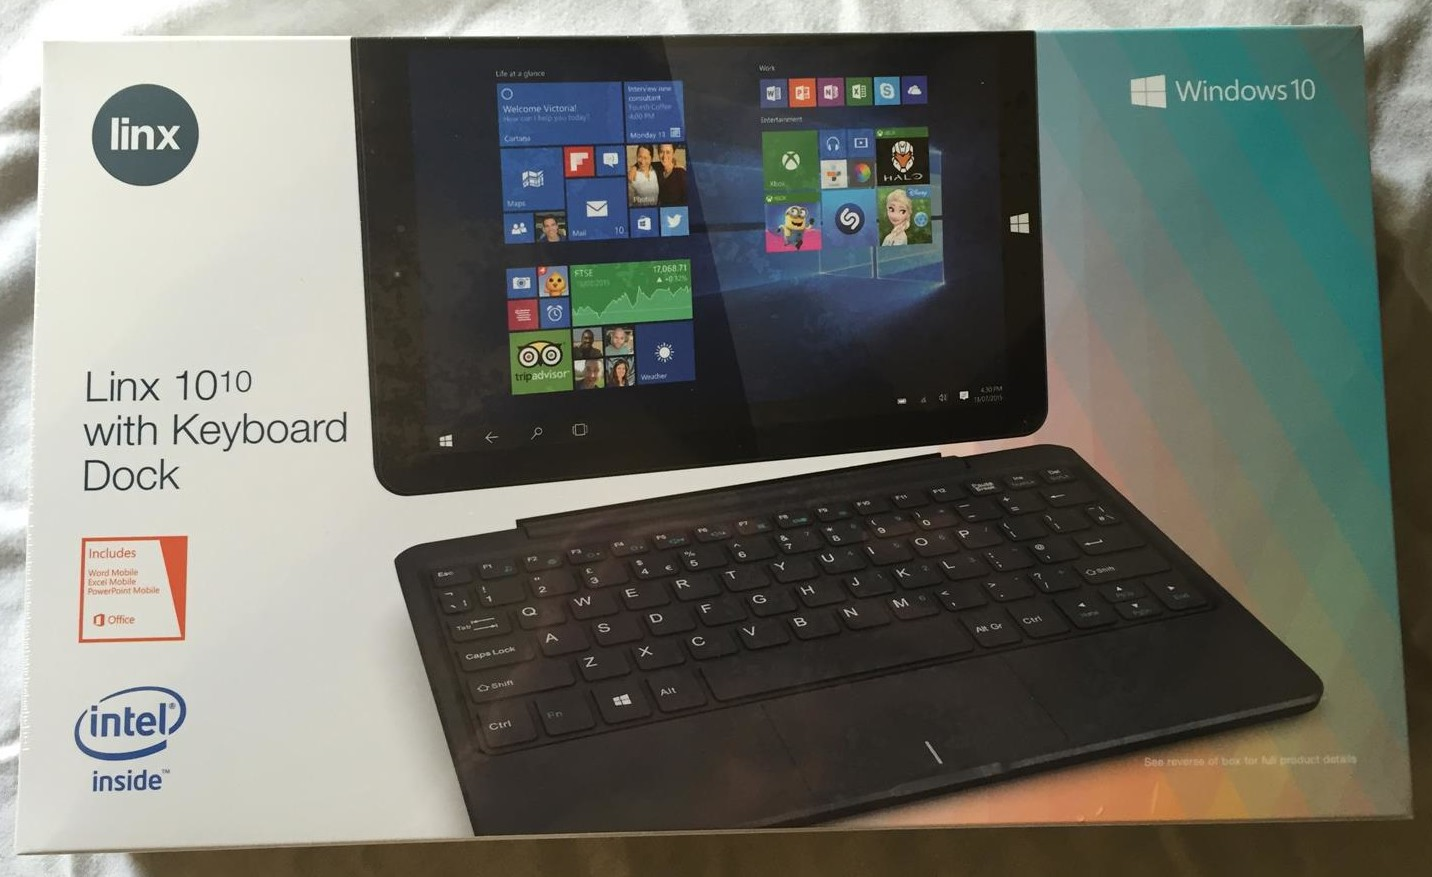 Linx 1010 Review – best Windows 10 tablet on the market right now